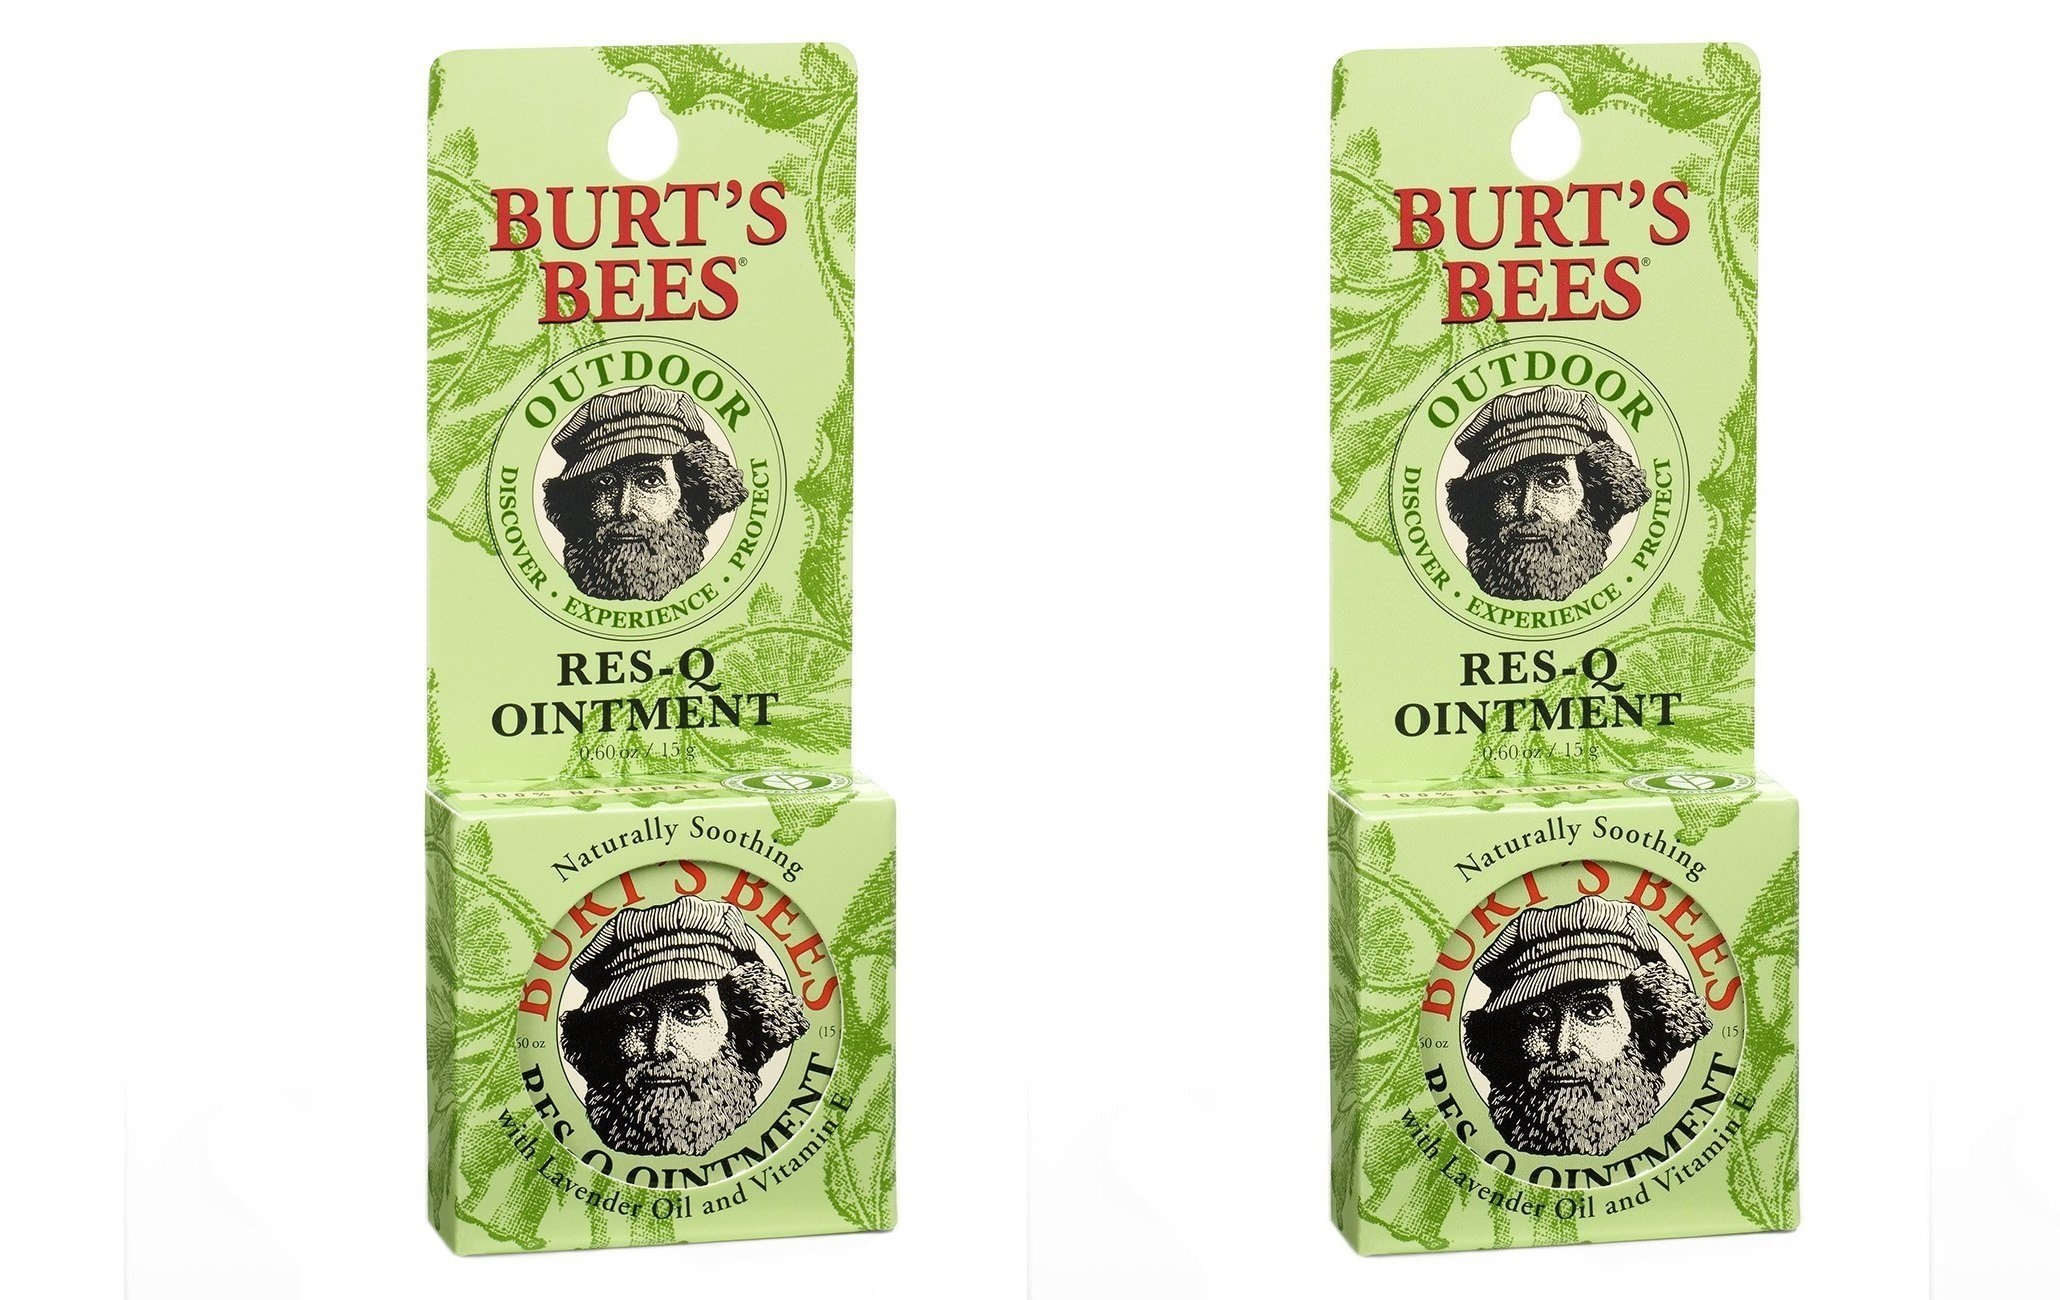 Burts Bees 100% Natural aNKGxl Res-Q Ointment, 0.6 Ounces, 3 Count (Pack of 2)